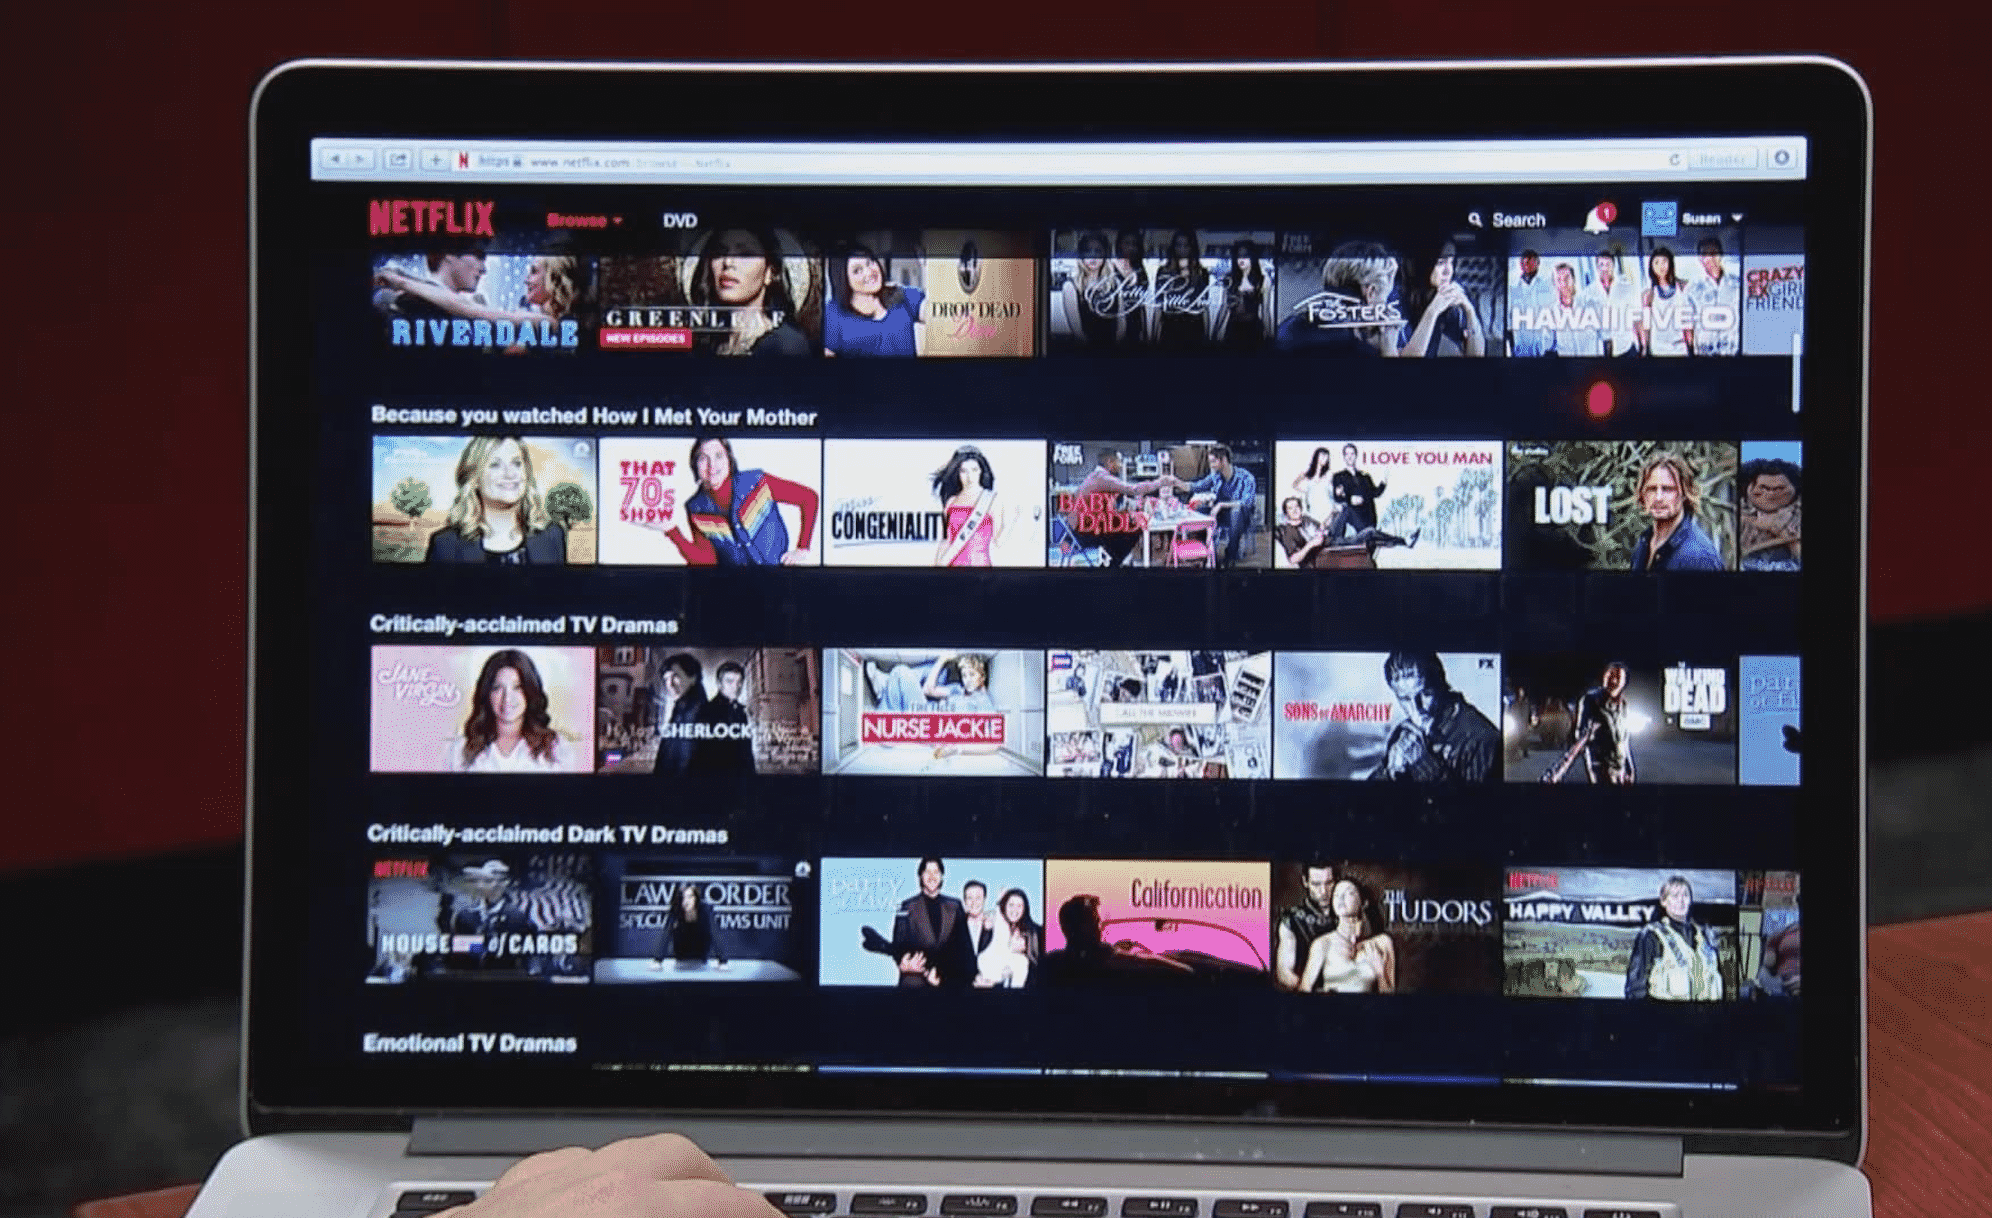 Netflix Expresses Confidence in Latest Earnings Report